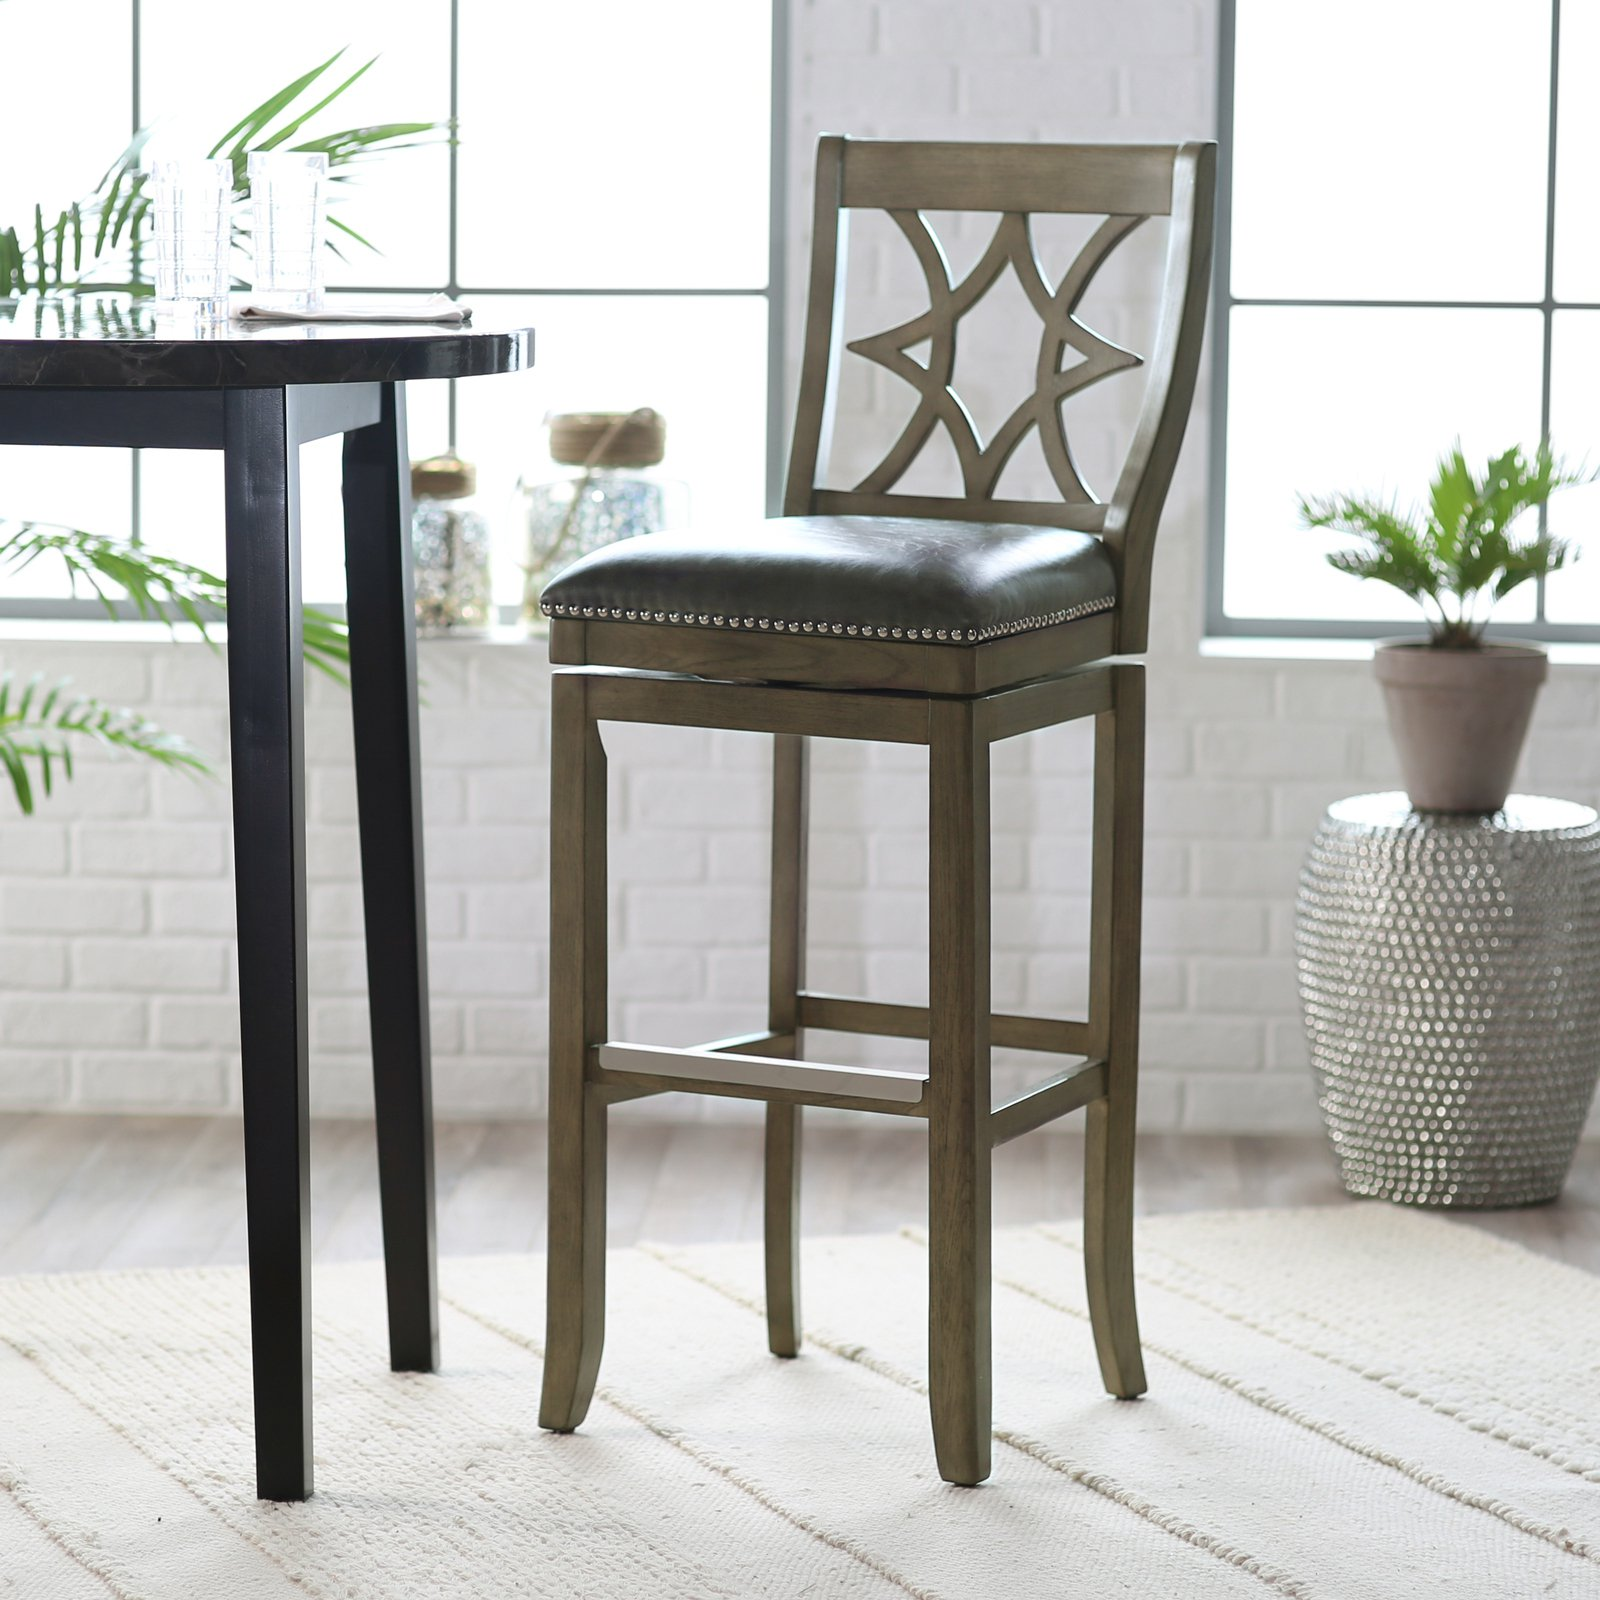 Belham living oliver square seat swivel extra tall bar stool walmart com